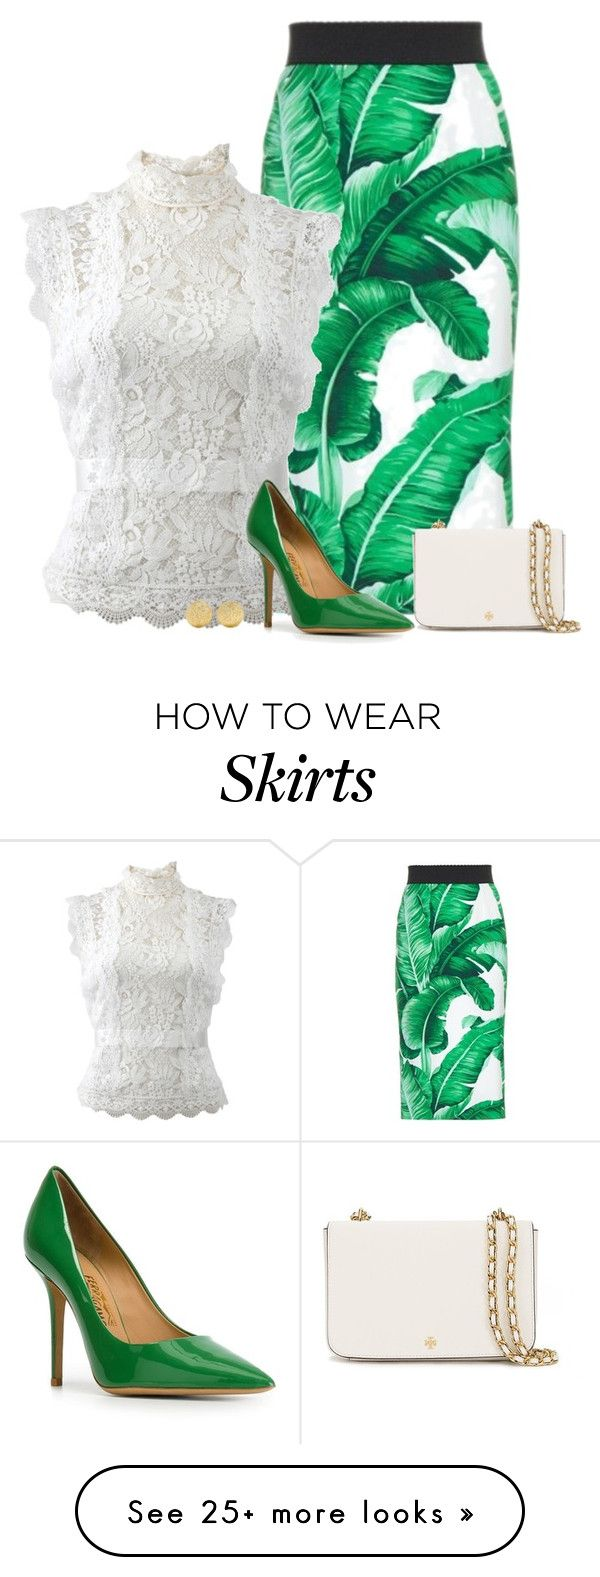 """leafy"" by divacrafts on Polyvore featuring Dolce&Gabbana, Oscar de la Renta, Salvatore Ferragamo, Tory Burch, Carolina Bucci and Original"